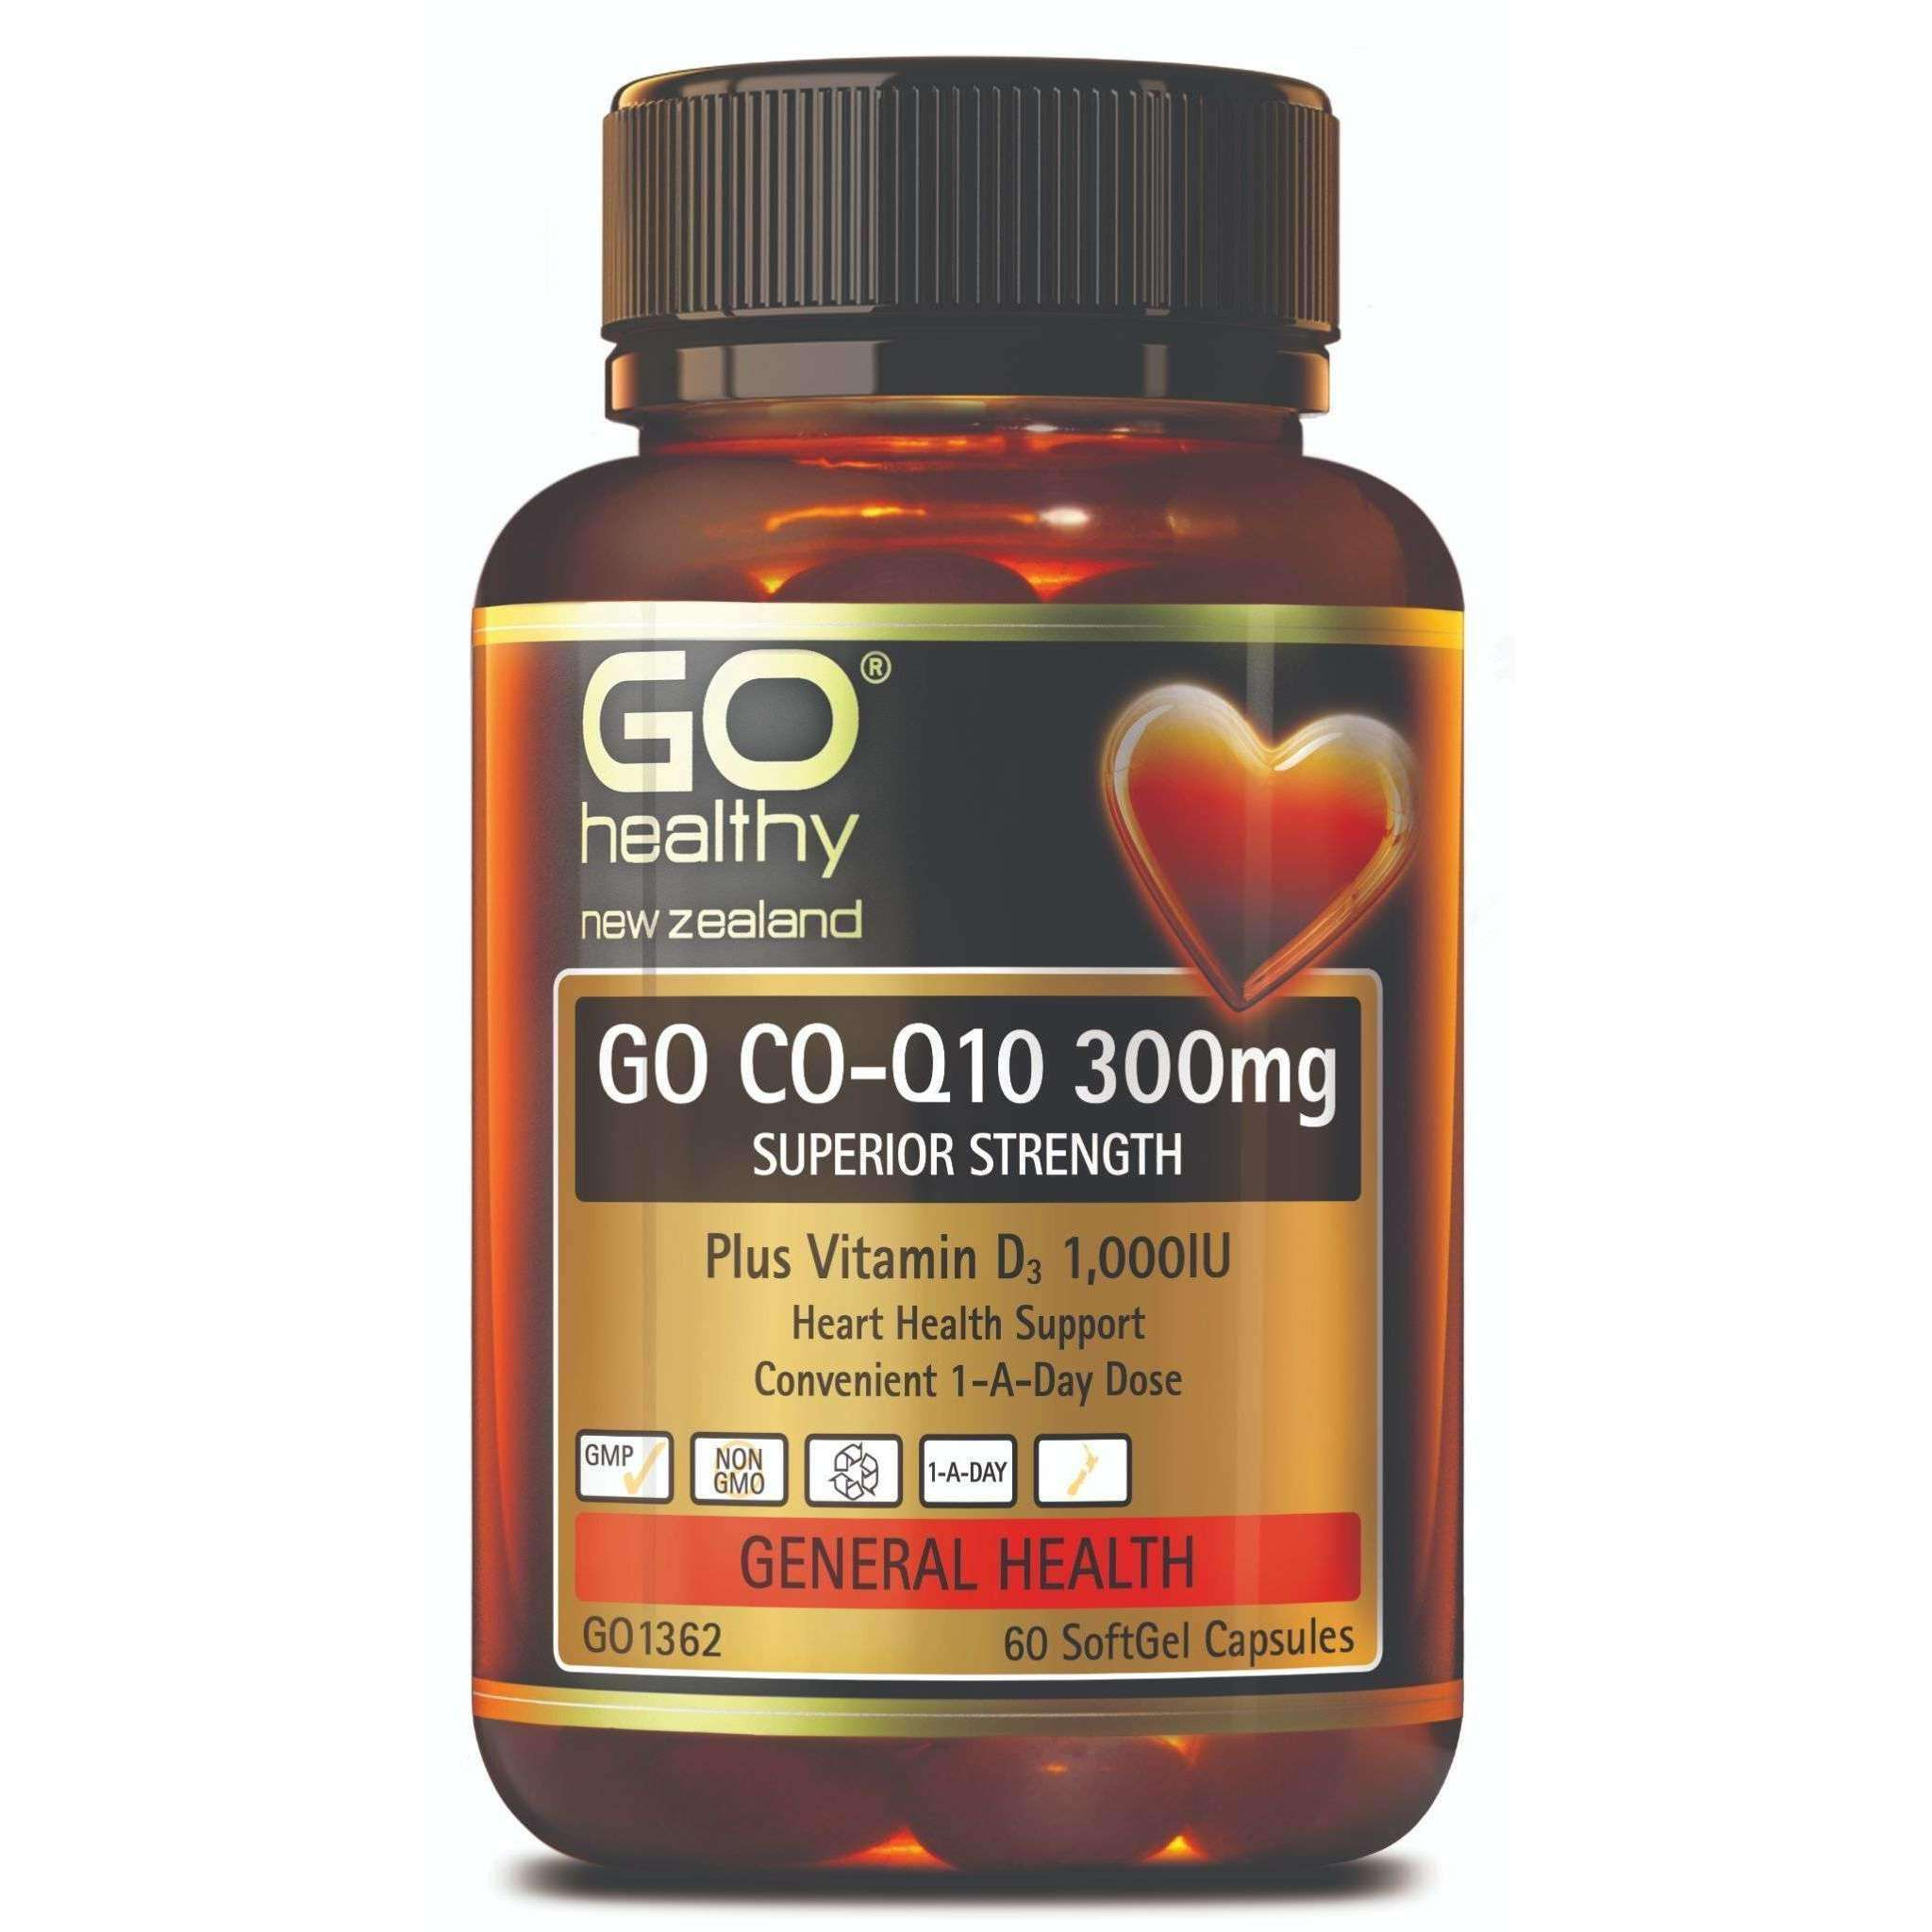 Go Co-Q10 300mg + Vitamin D3